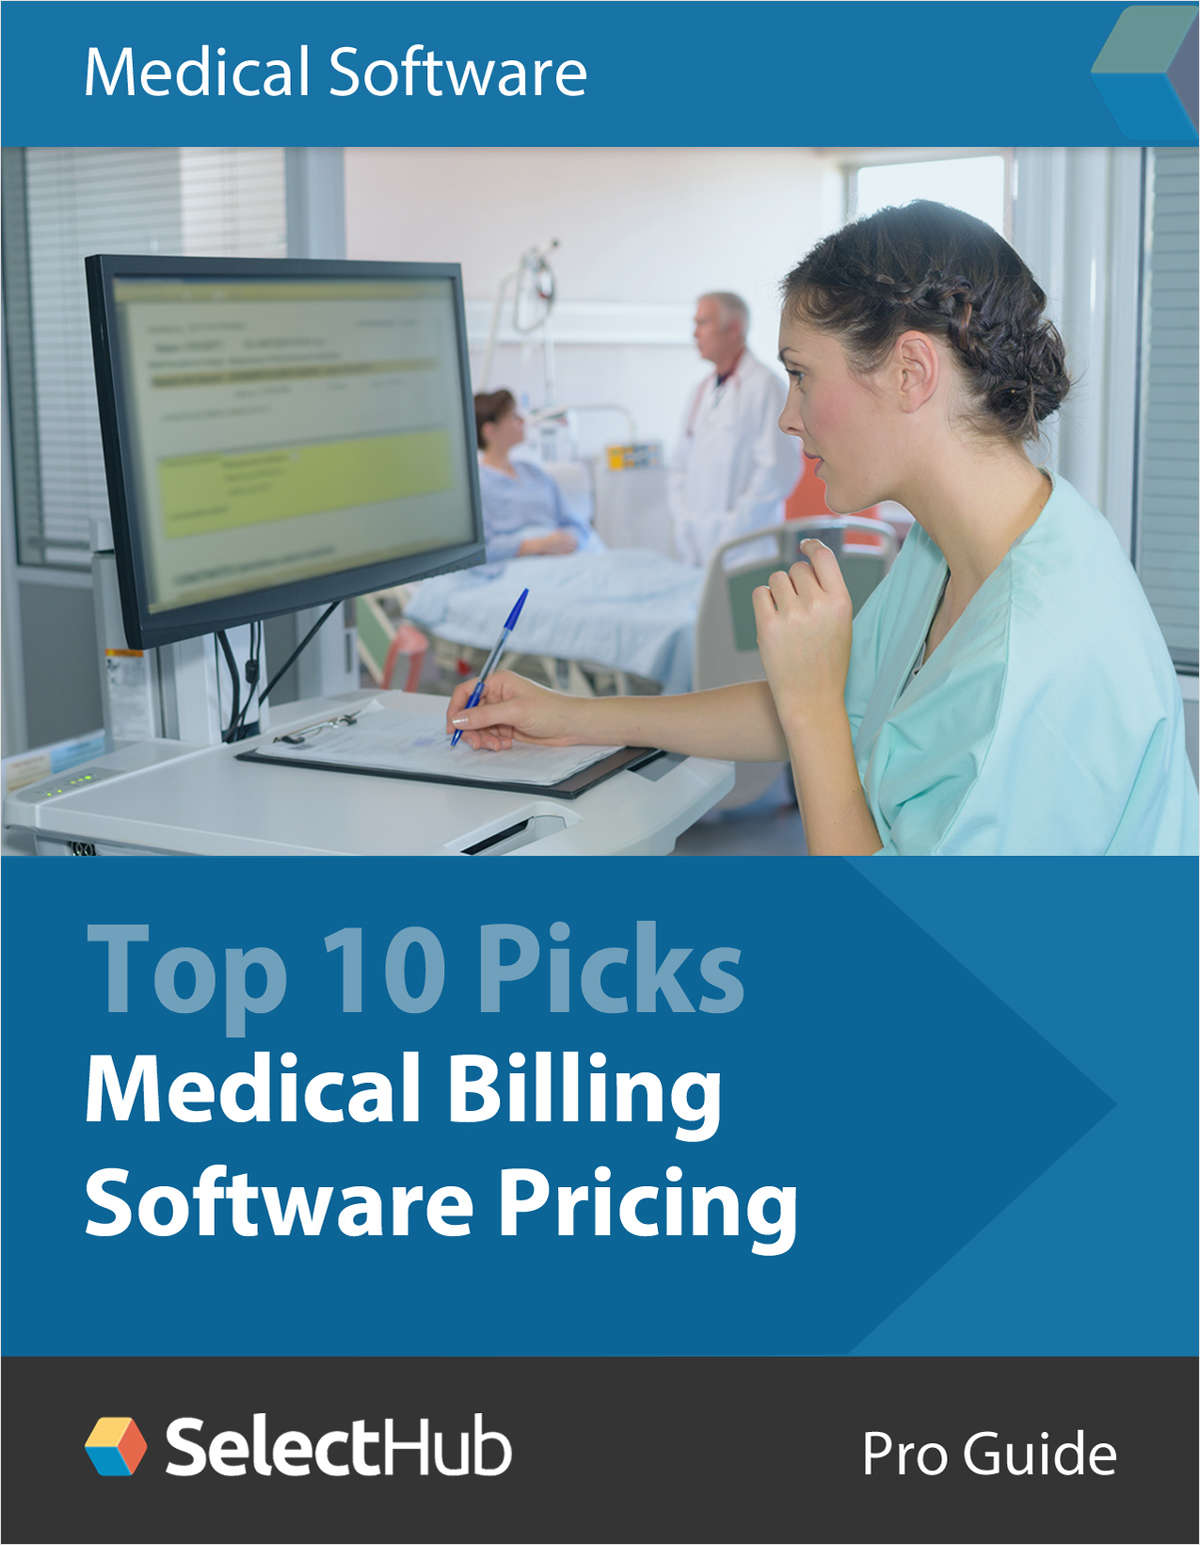 Top Medical Billing Software Costs & Pricing for 2019